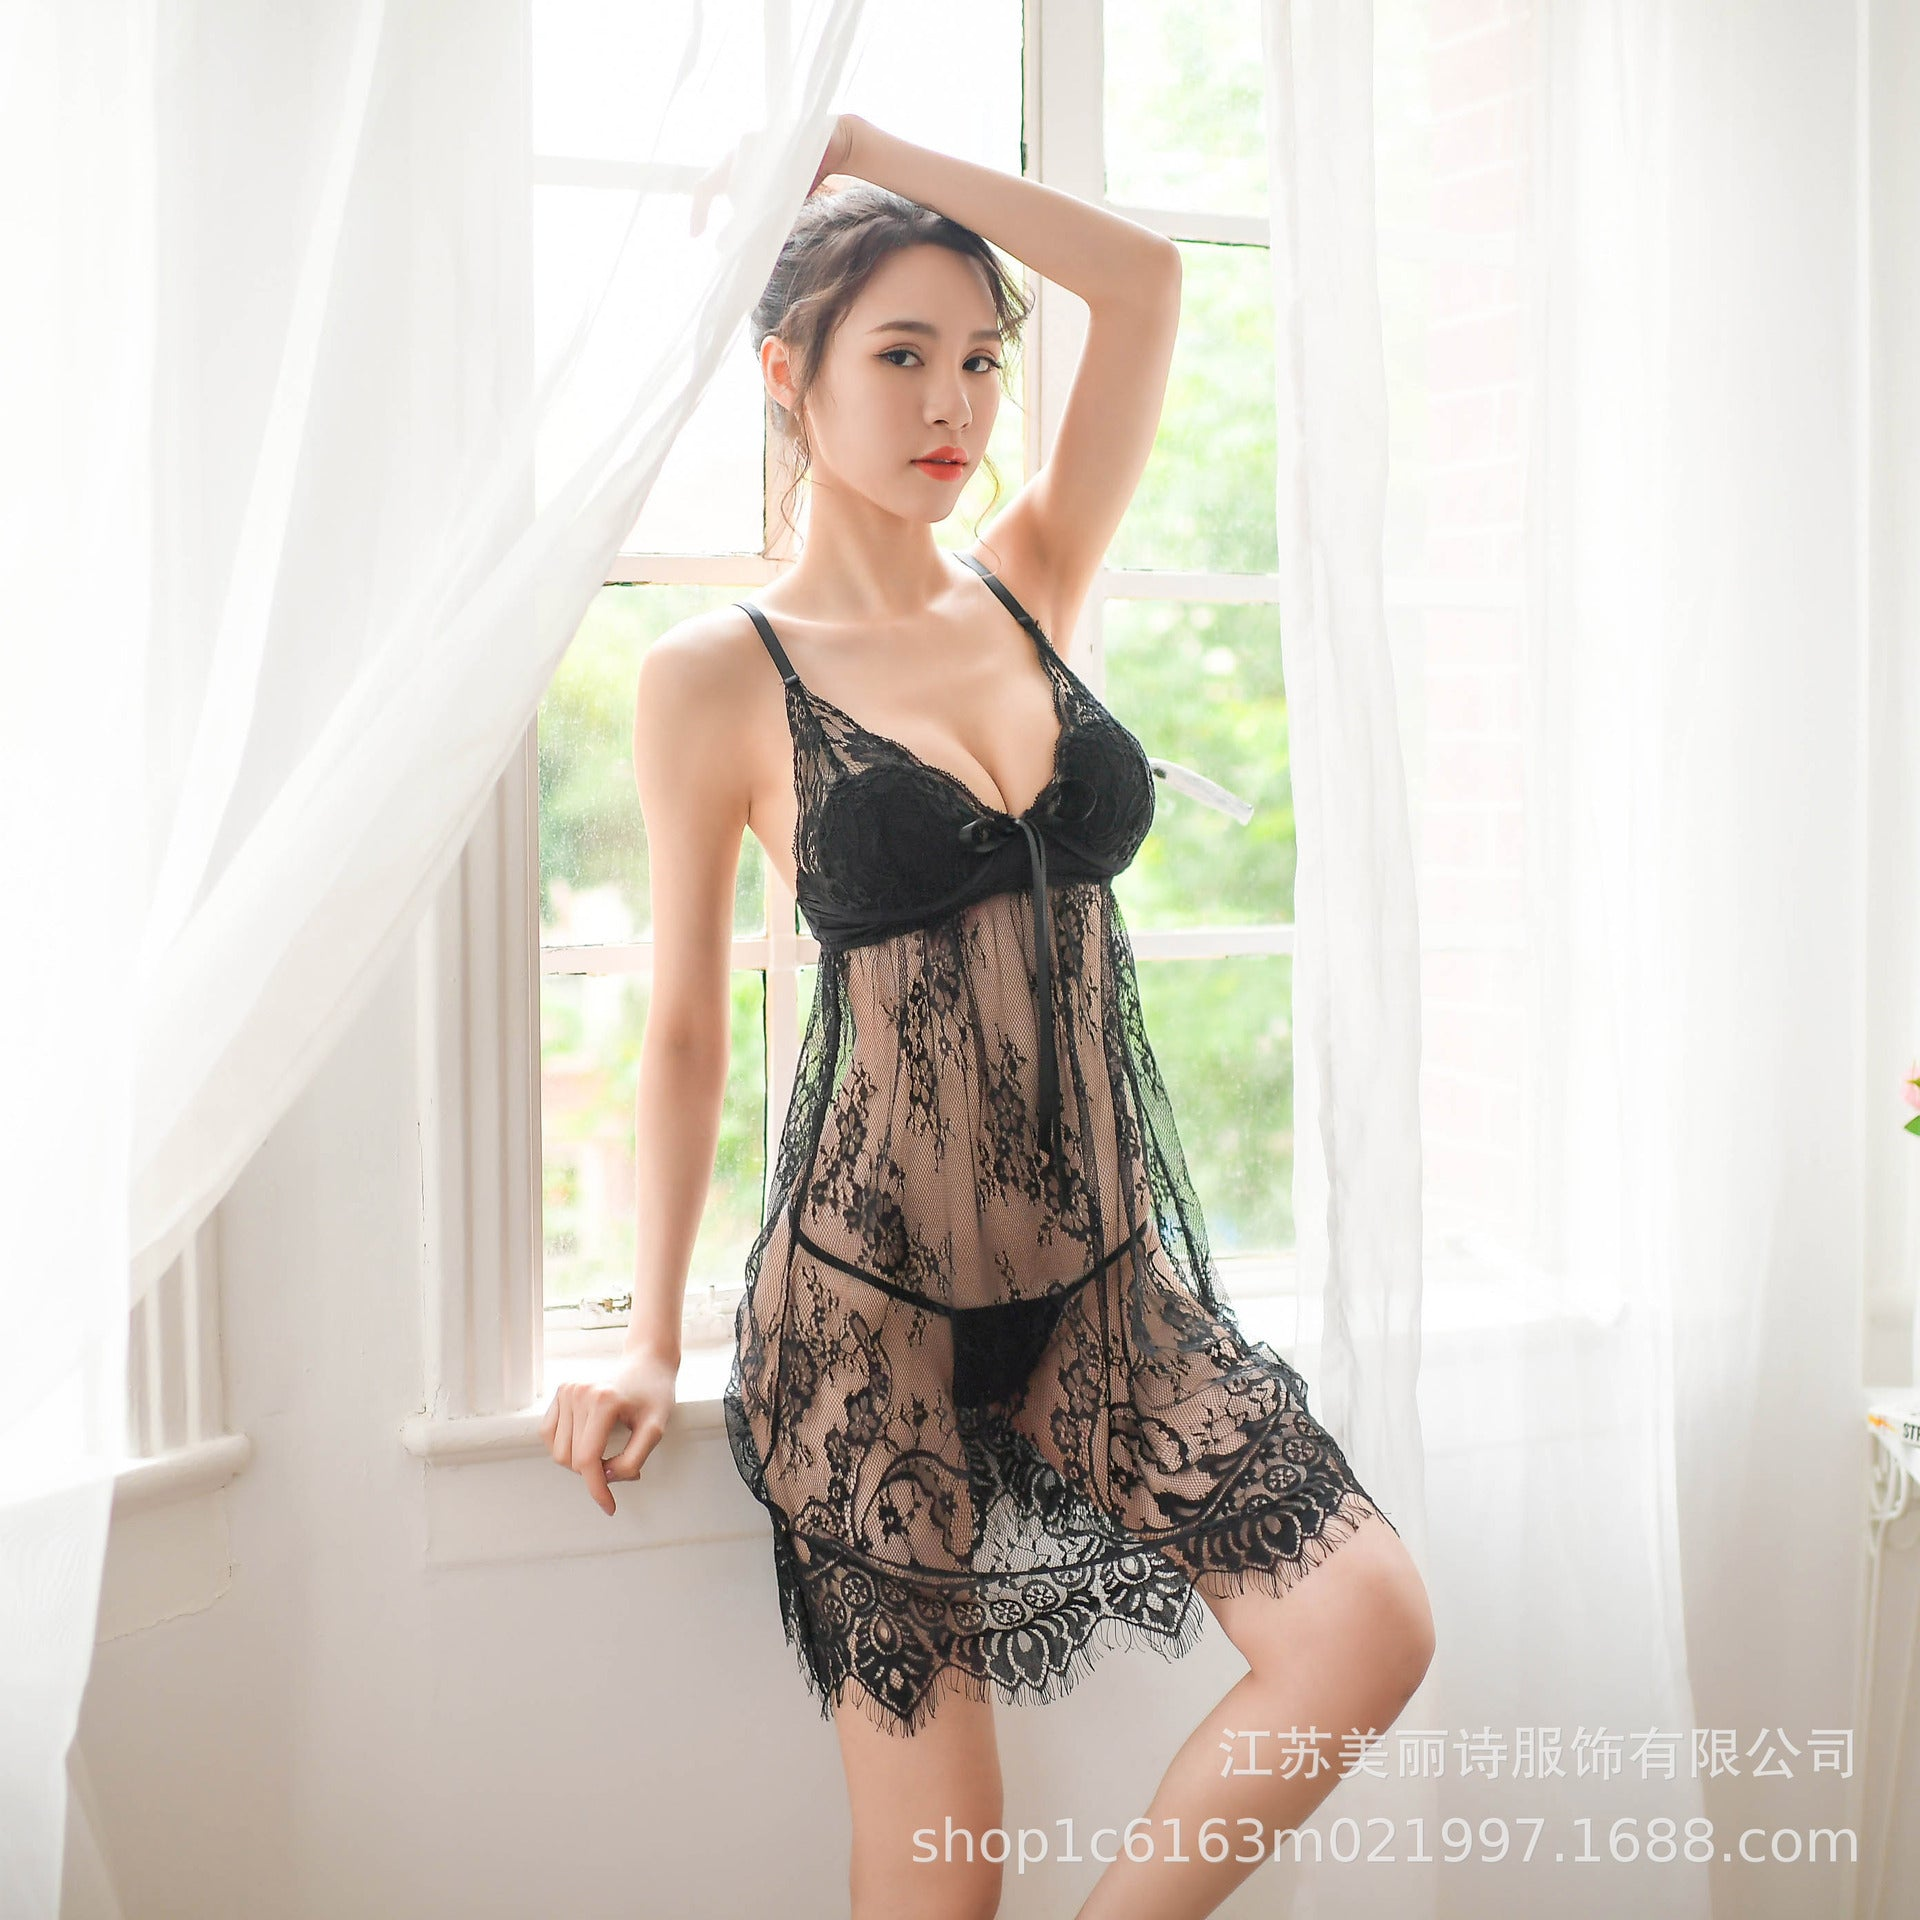 Mesh transparent lace black eyelash lace sexy lingerie long paragraph female nightdress perspective temptation pajamas 8217